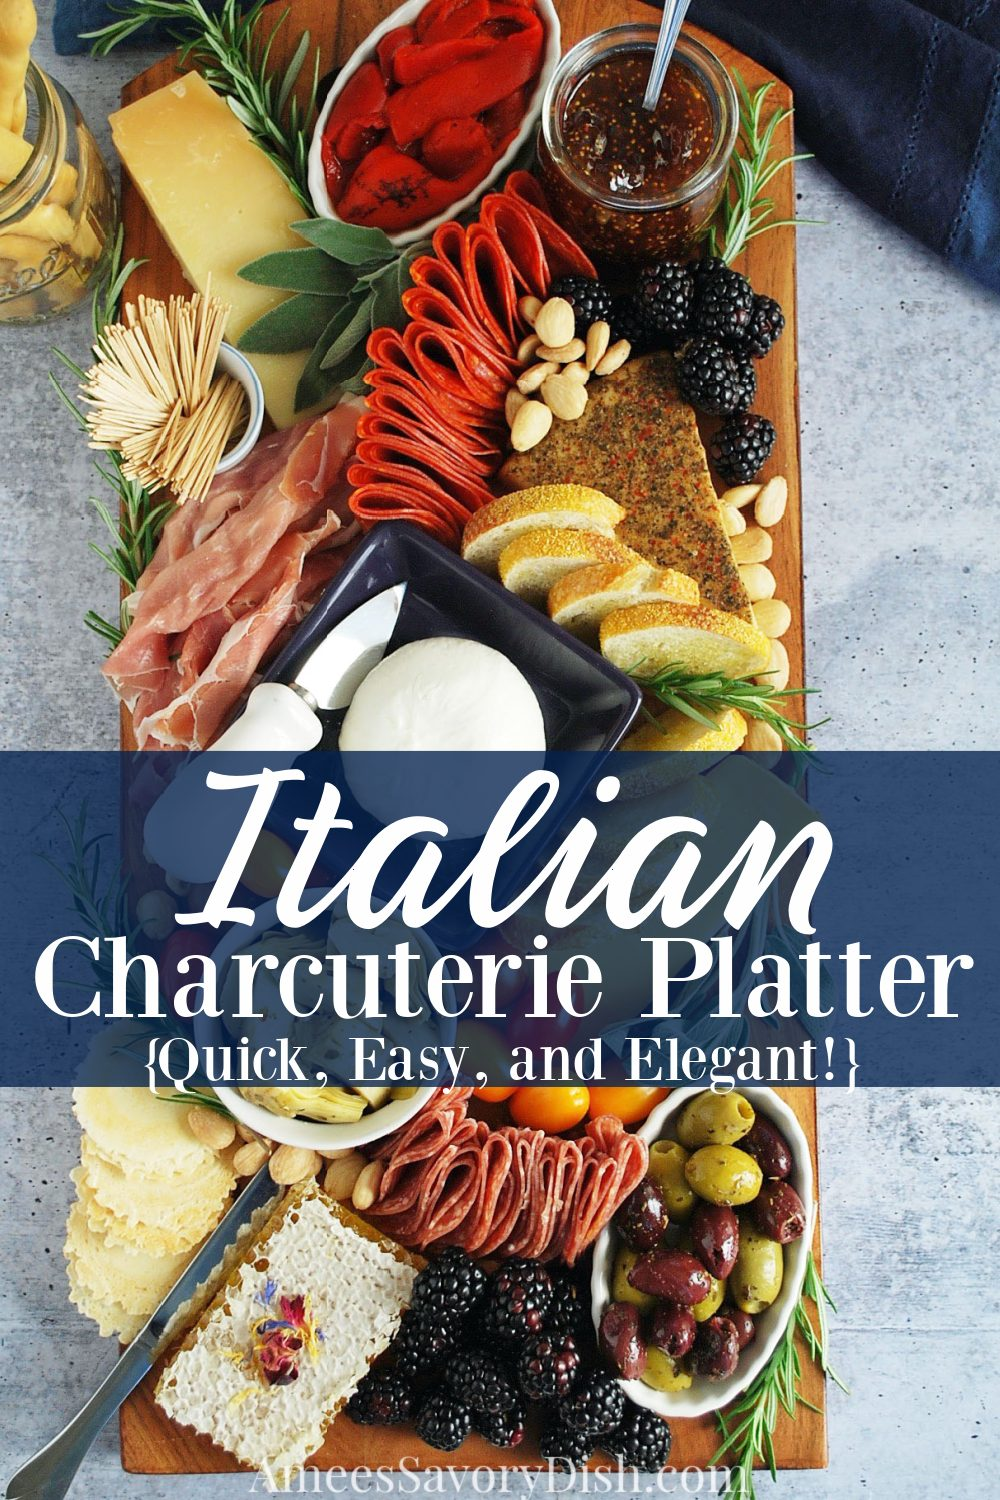 how to build a beautiful, yet simple, Italian Charcuterie platter for effortless entertaining. This Italian Charcuterie board is not only a cinch to throw together, but it makes a gorgeous presentation for serving guests. #charcuterie #charcuterieboard #charcuterieplatter #italiancharcuterie #italianfood via @Ameessavorydish